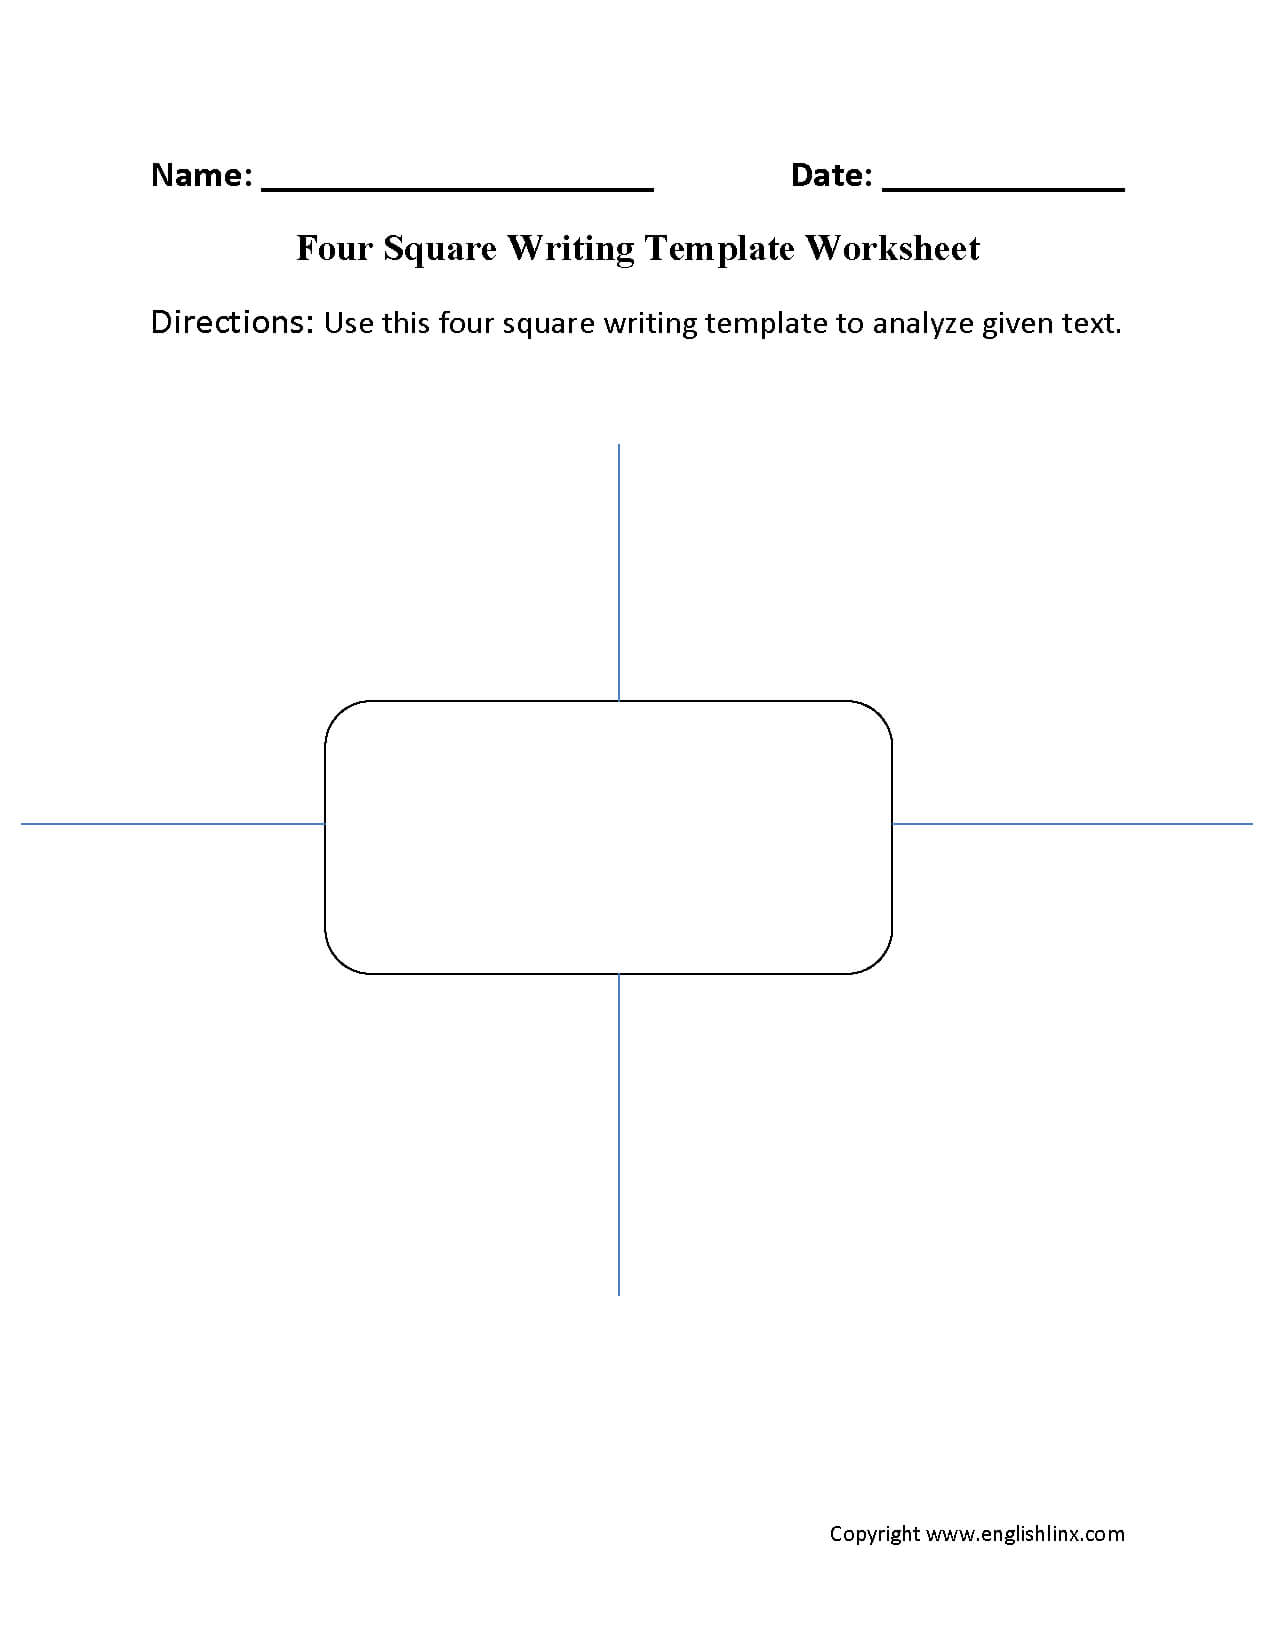 Writing Template Worksheets | Four Square Writing Template For Blank Four Square Writing Template